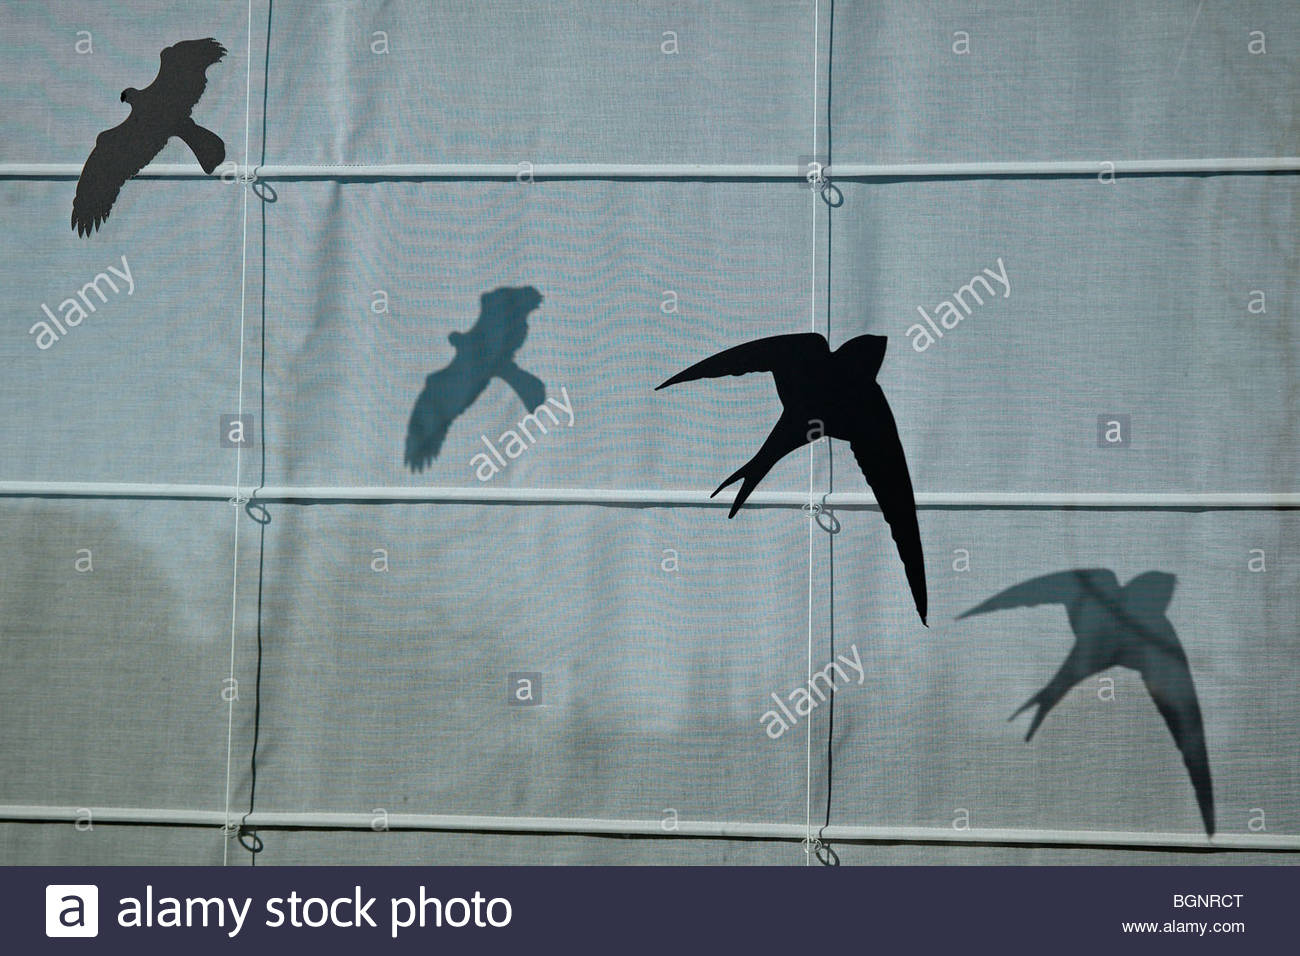 Stickers of silhouetted birds of prey shapes to avoid crashing into windows - Stock Image